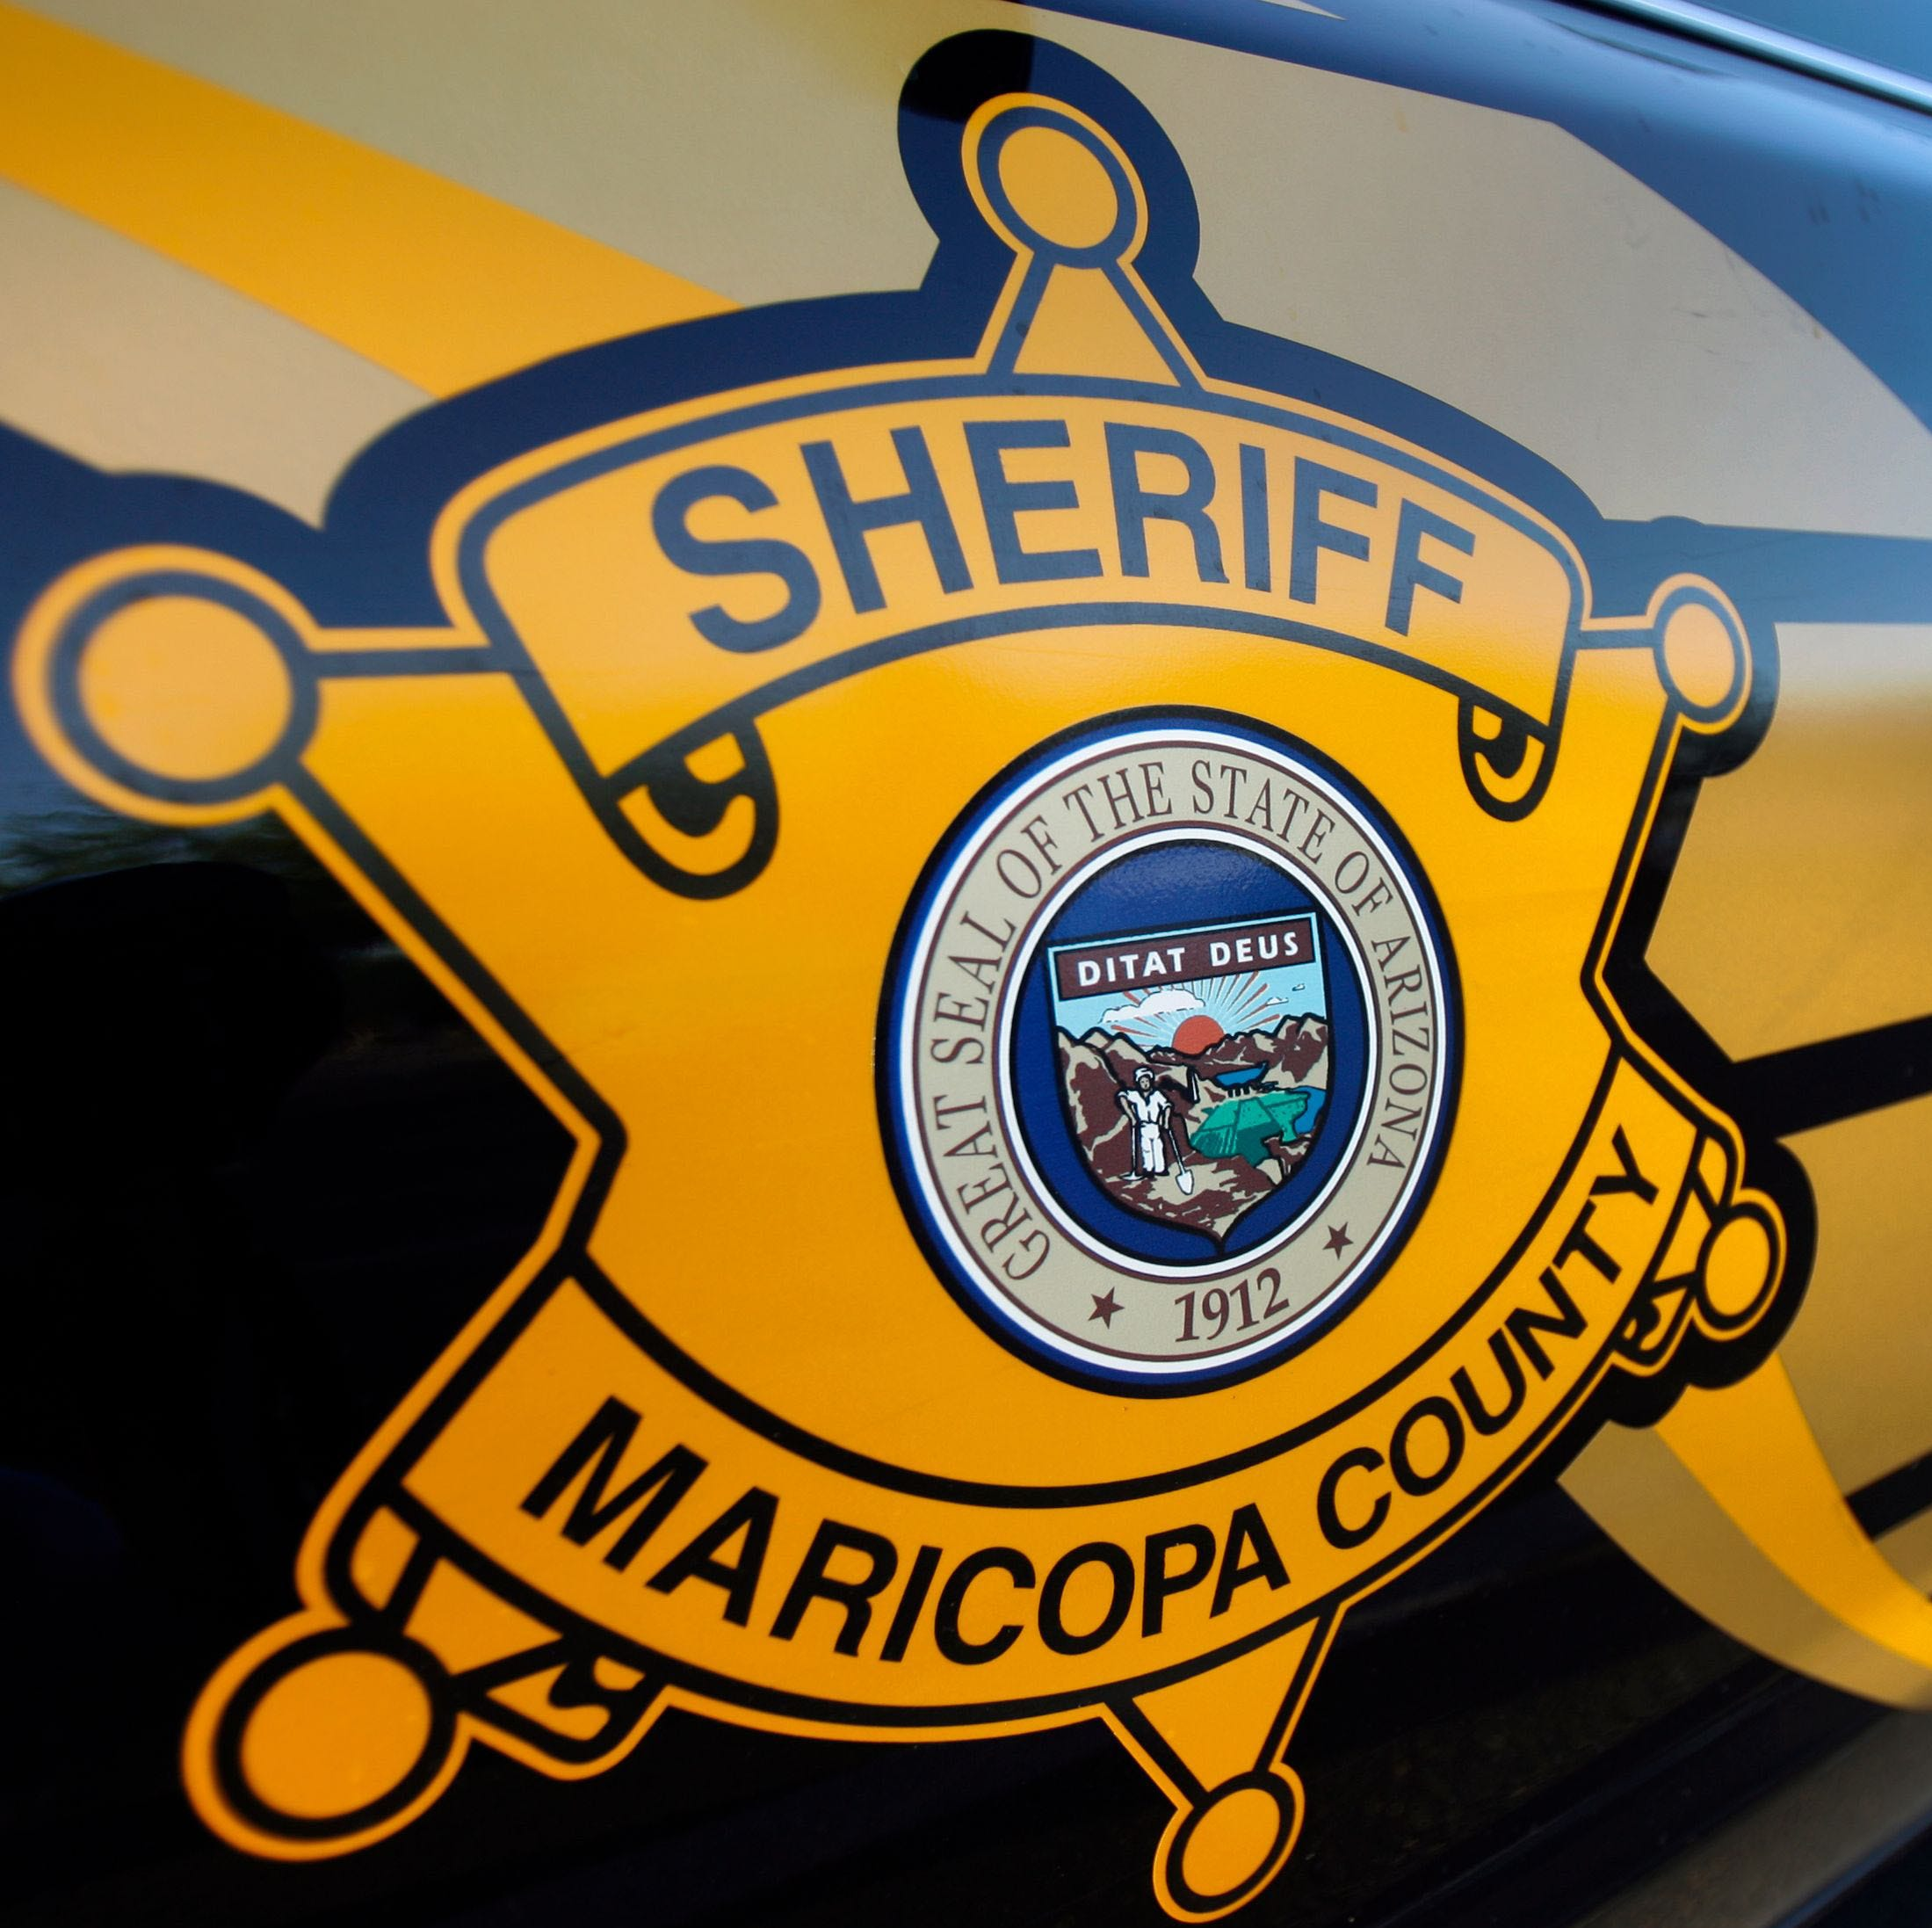 Maricopa County Sheriff's Office investigating shooting involving deputies in east Mesa